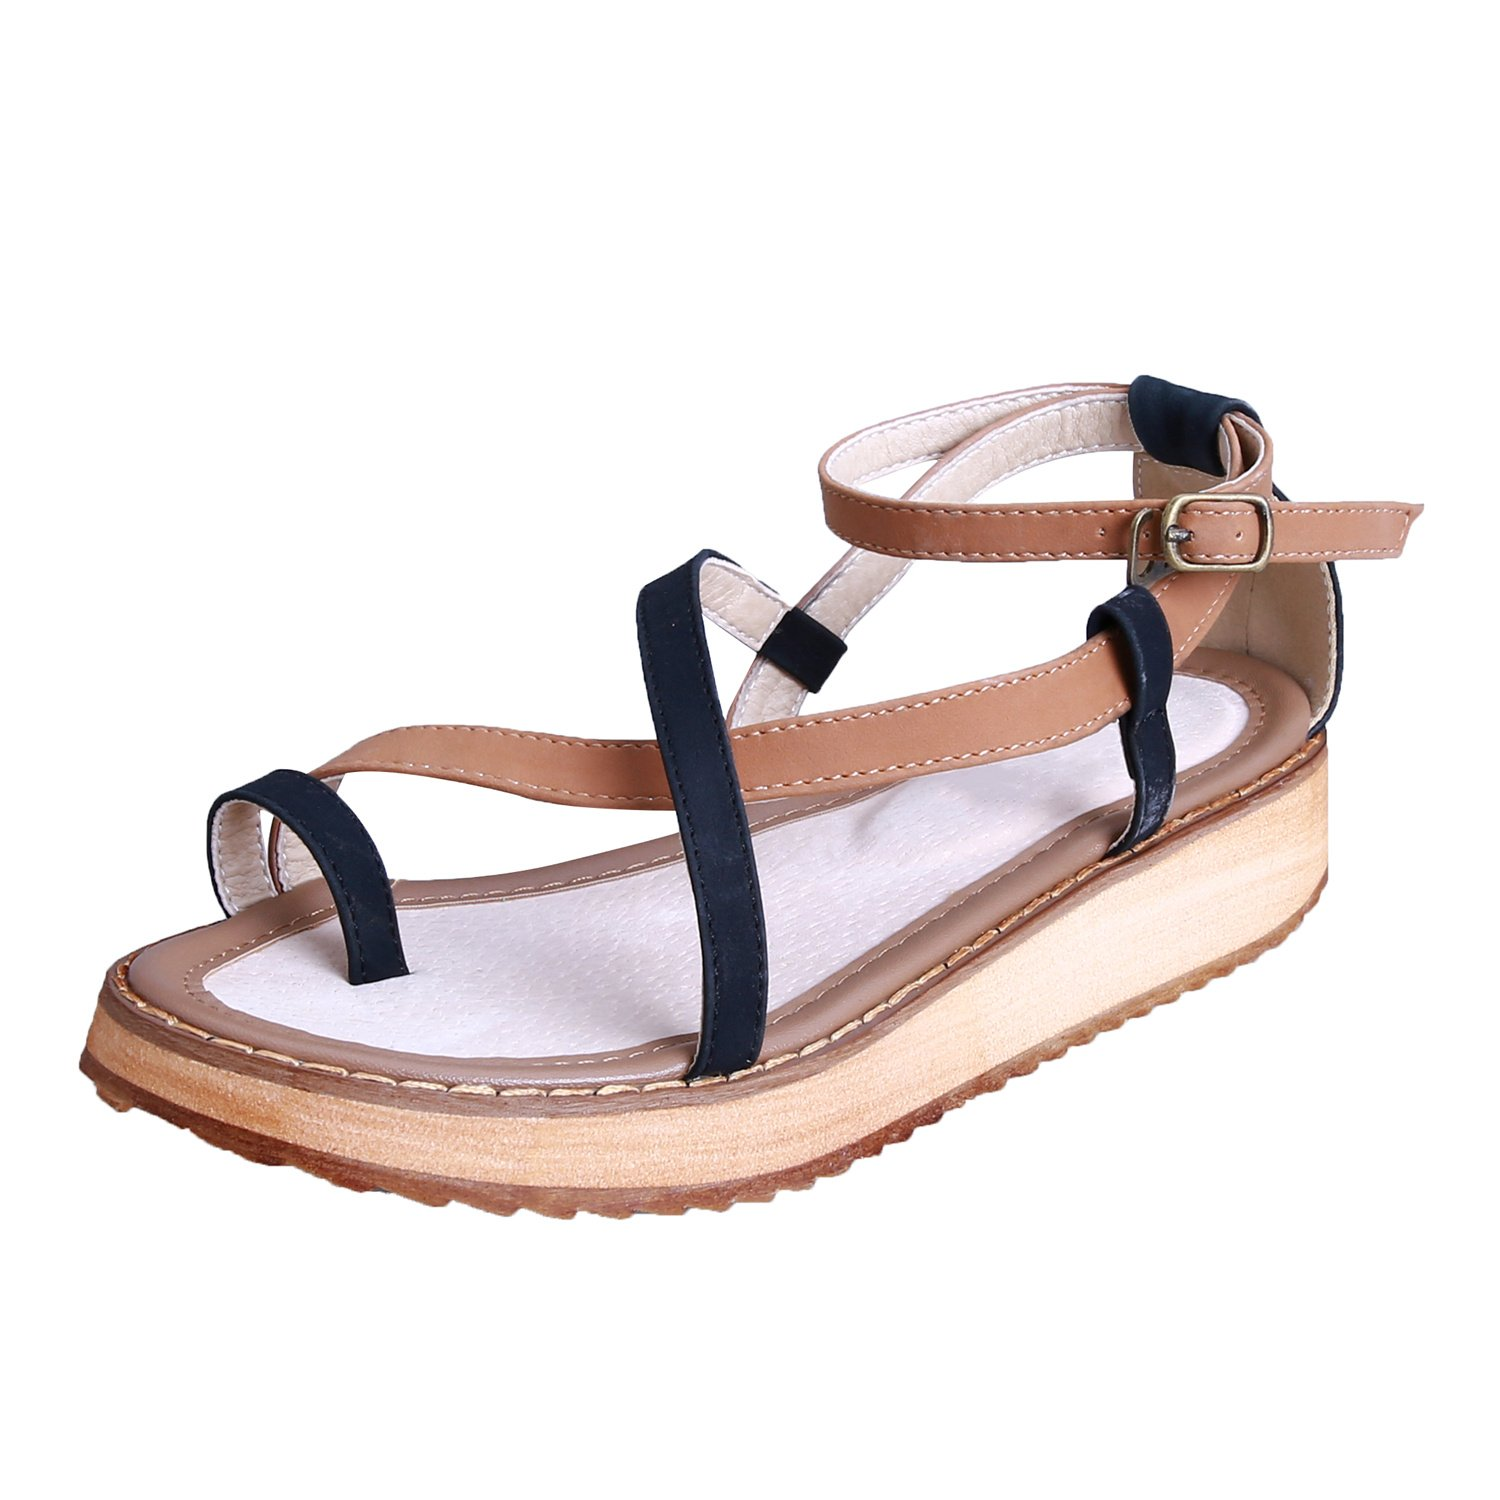 Smilun Girl's Fashion Strappy Roman Sandals Wedge Sandals Flip Flops Thongs Open Toe Sandals Flip Flops Roman Sandal Summer Sandals Black US6